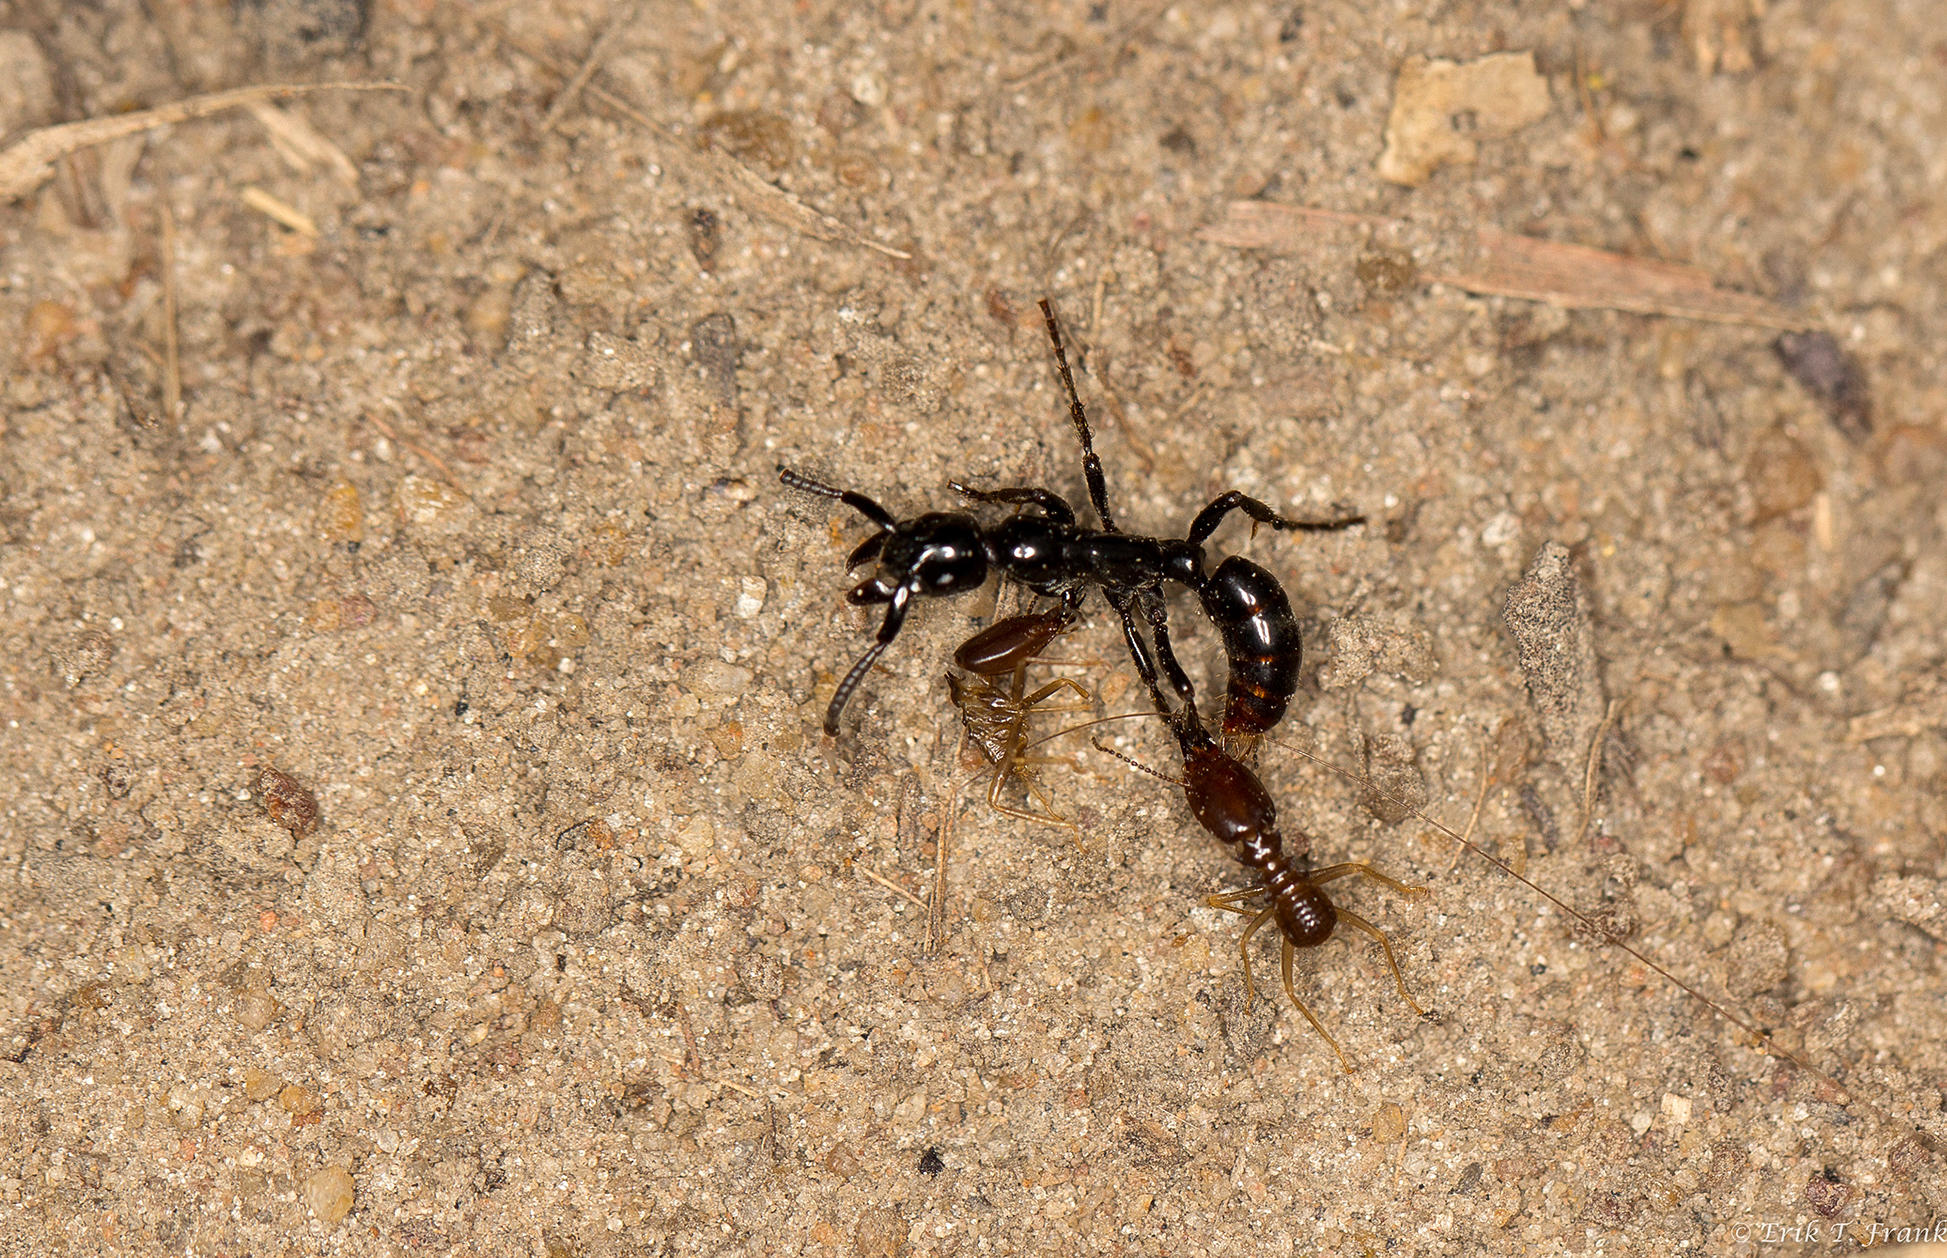 Ants march into battle and rescue their wounded comrades